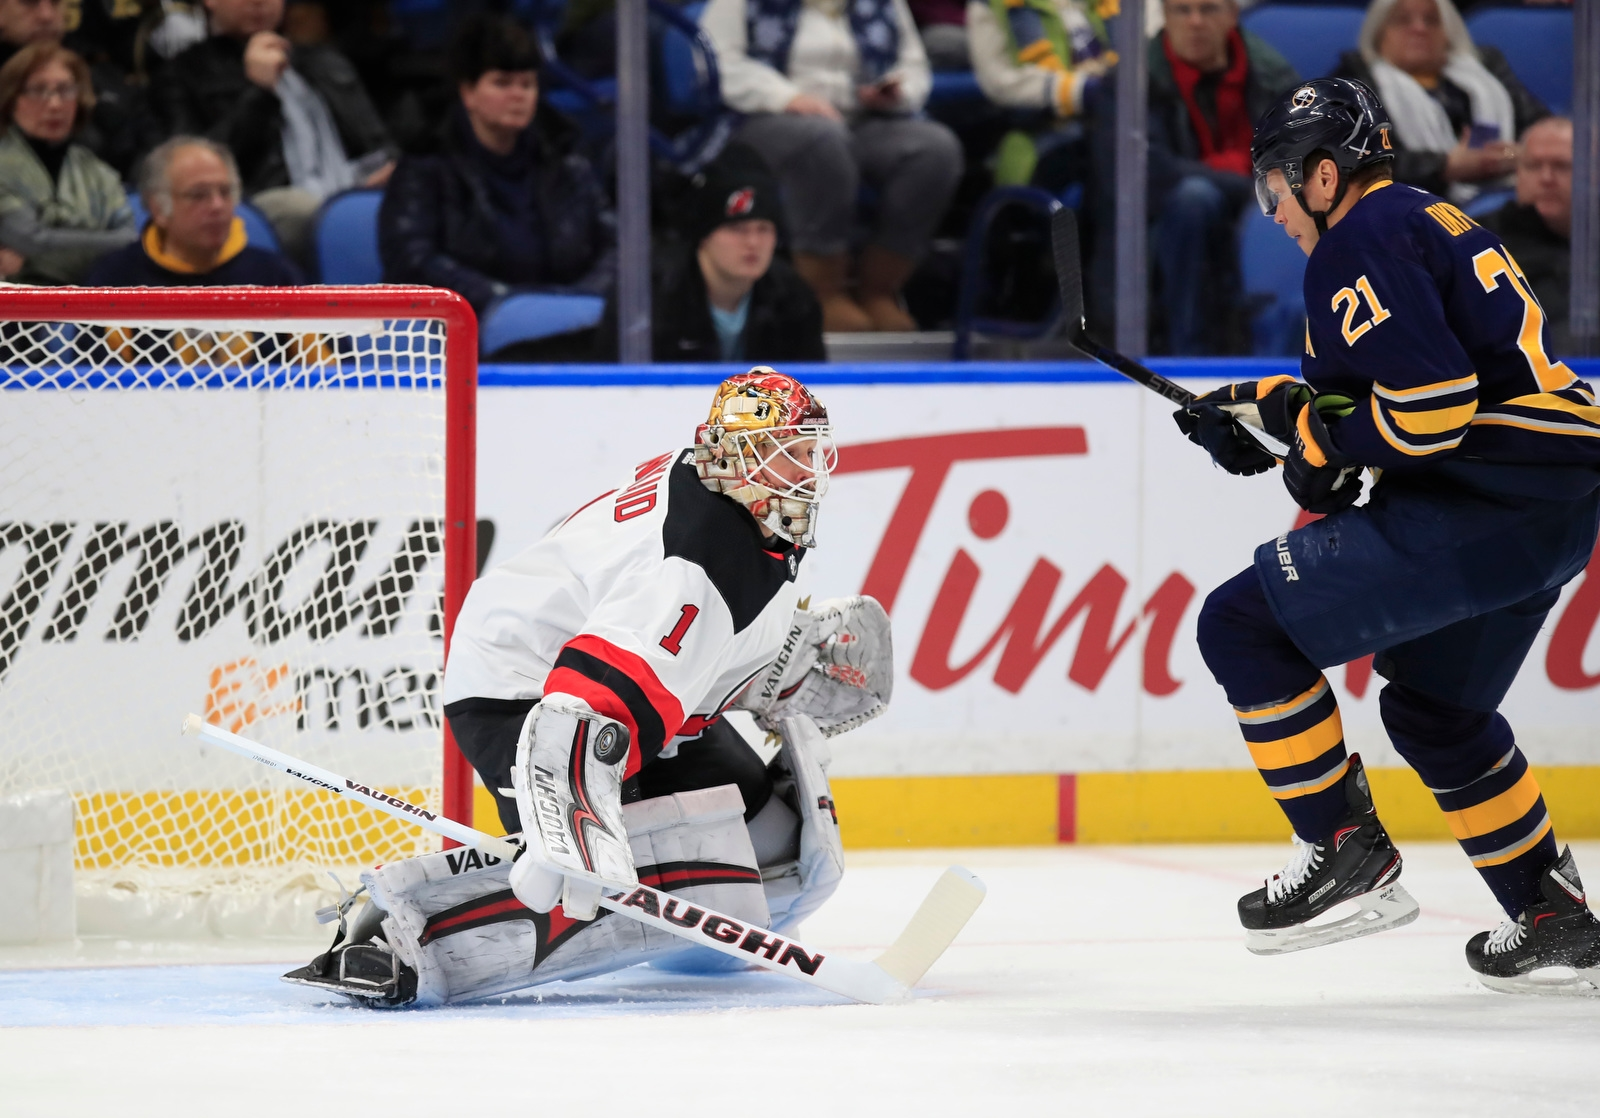 Buffalo Sabres Kyle Okposo is stopped by New Jersey Devils goaltender Keith Kinkaid during first period action at the KeyBank Center on Tuesday, Jan. 30, 2018.